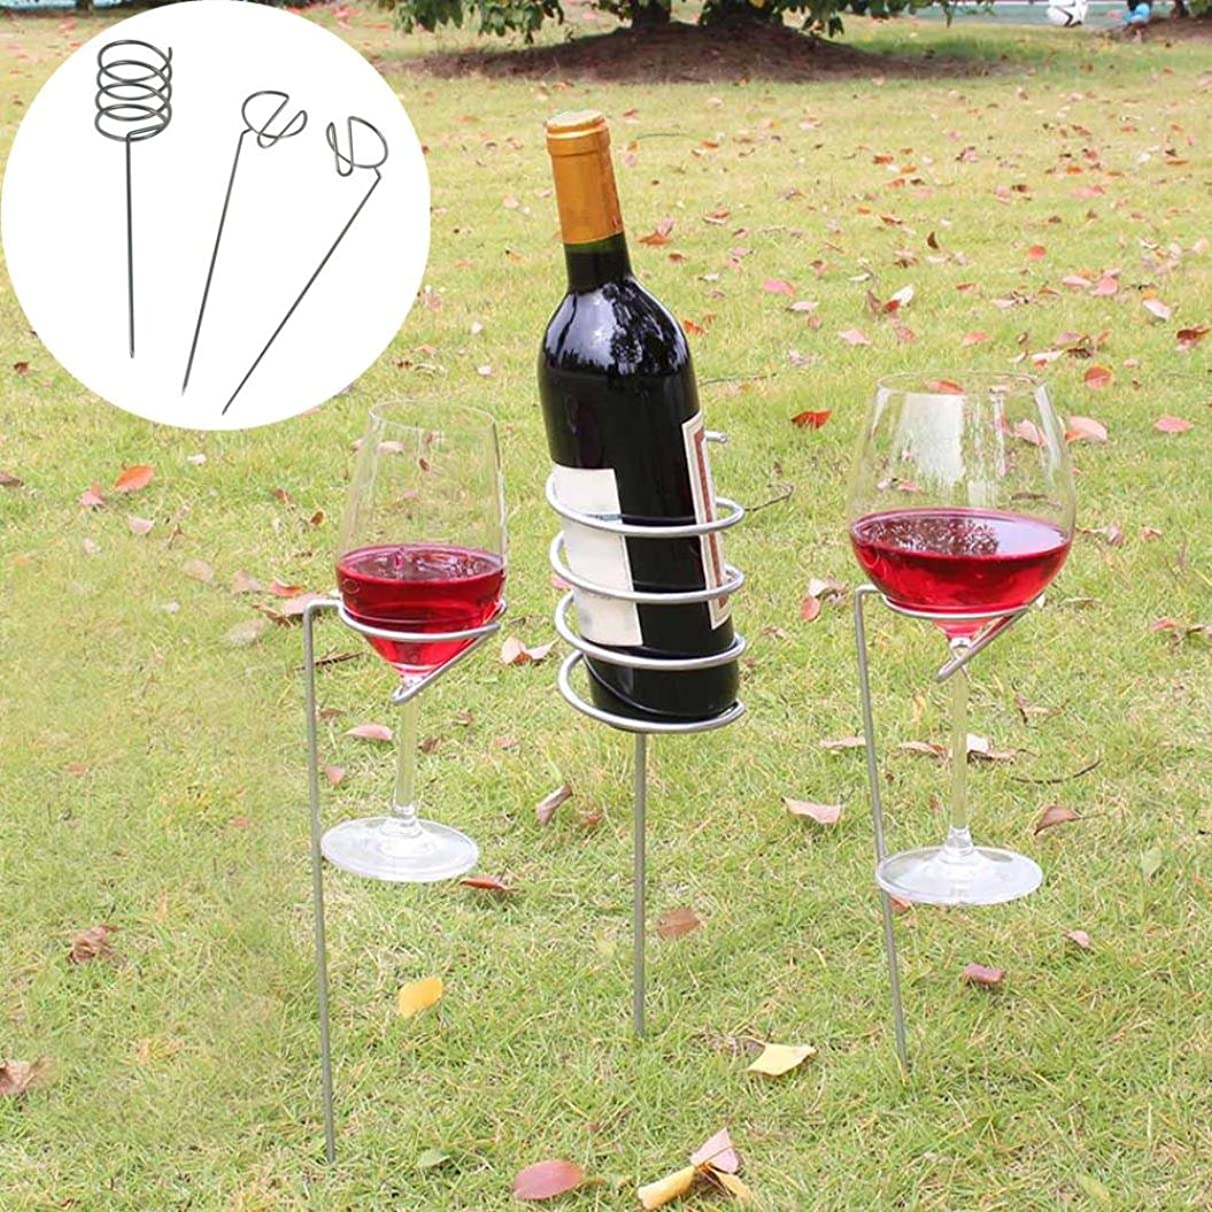 Wensltd Wine Stakes Set, Wine Glass & Bottle Holder Stake Set For BBQ Garden Picnic Camping Wine Stakes